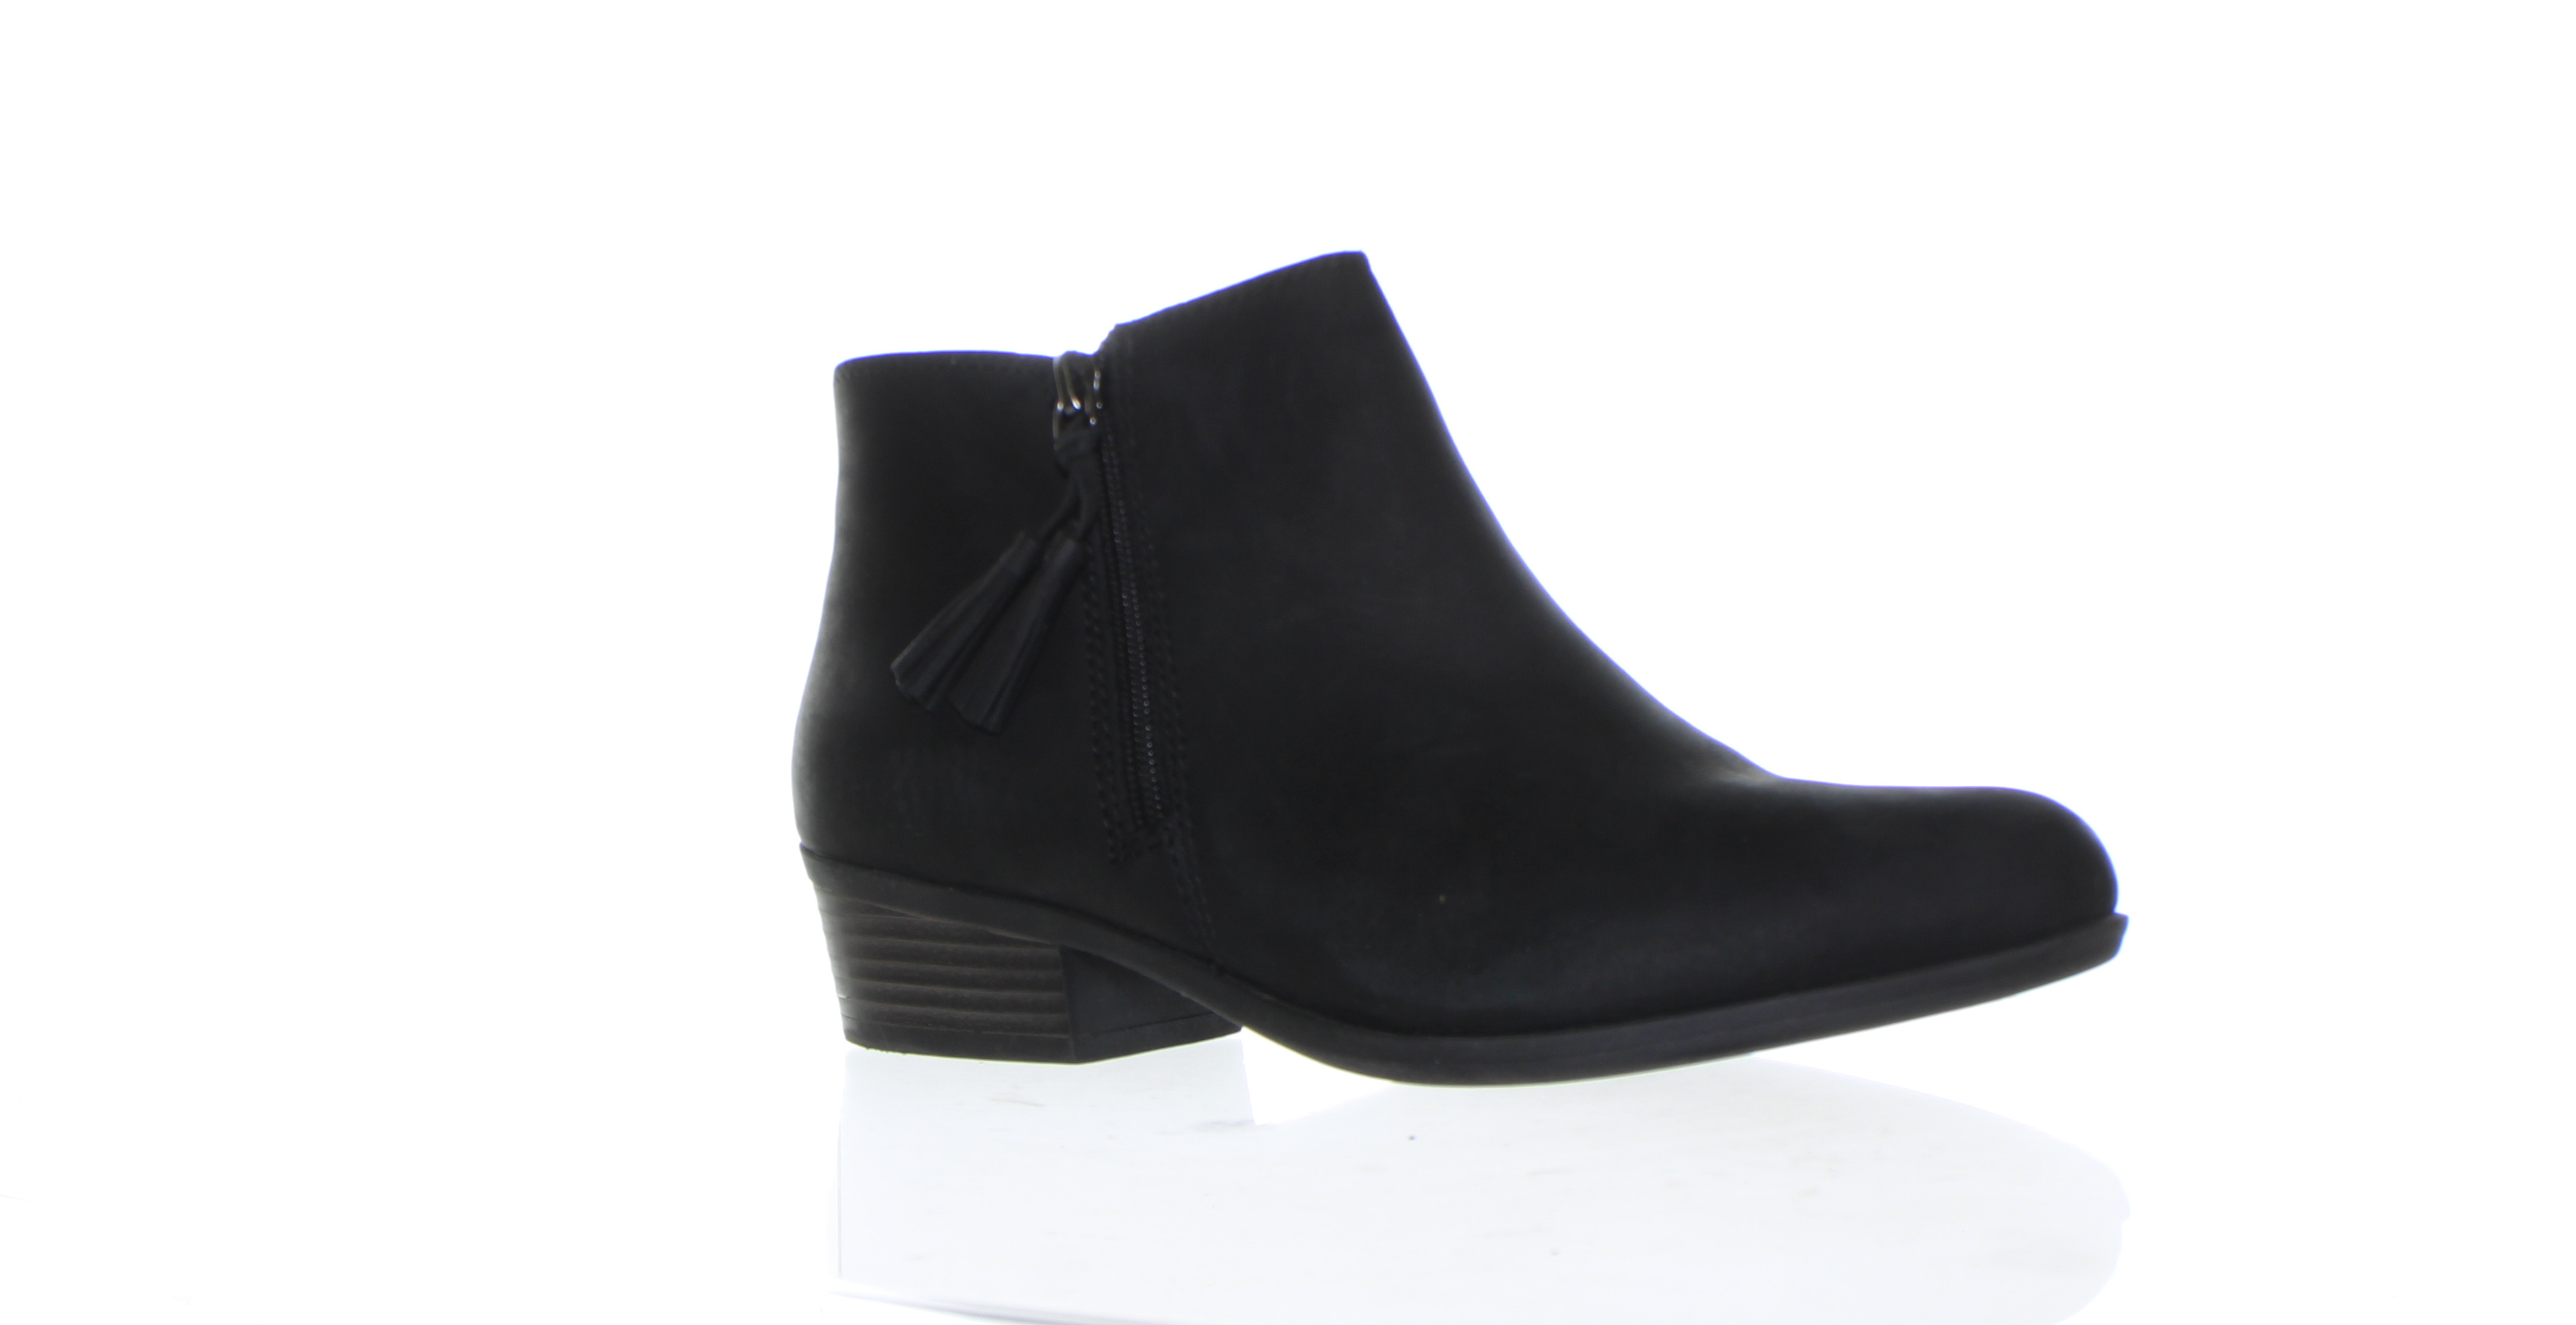 Details about Clarks Womens Addiy Terri Black Leather Booties Size 7.5 (721198)